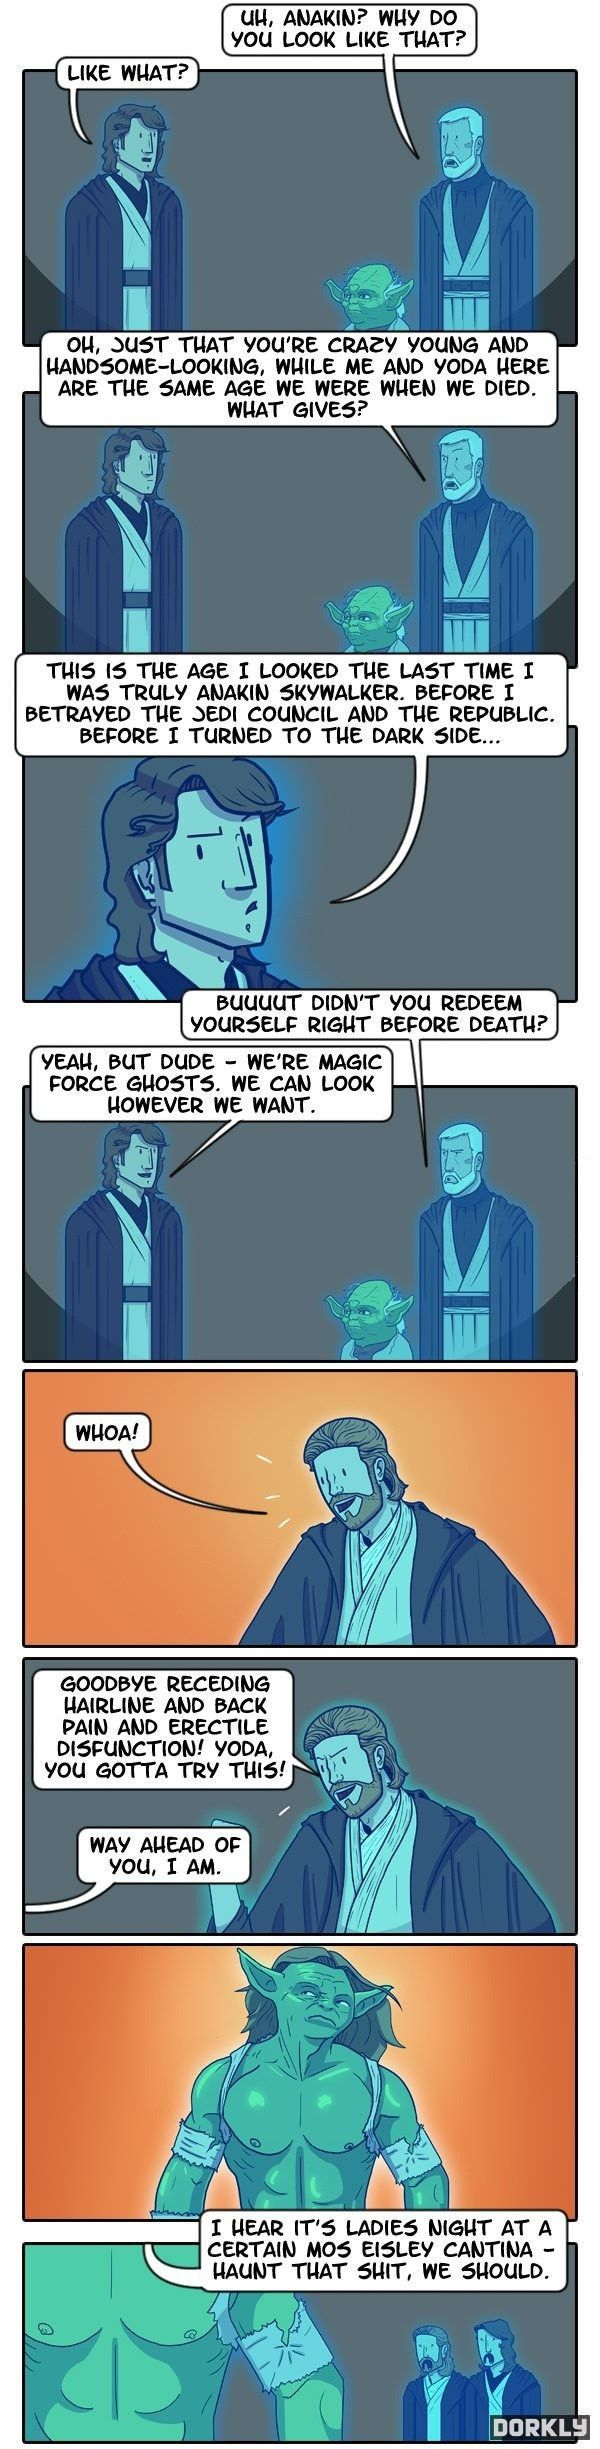 Changing Force Ghosts - The Jedi Temple - Star Wars Community & Funny Pictures - Powered by Pinnect